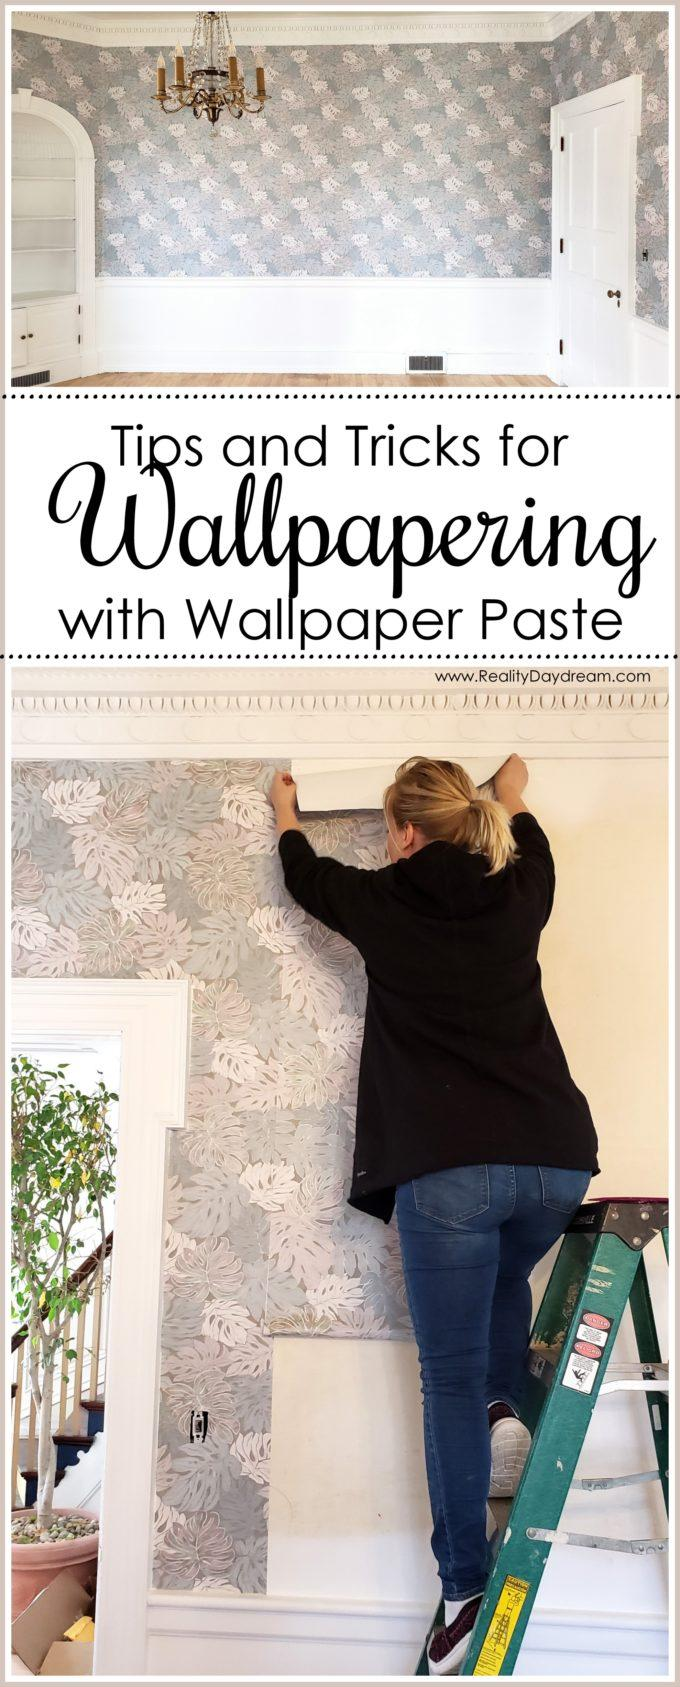 Putting up wallpaper with wallpaper paste! Tips, tricks and tools! {Reality Daydream}